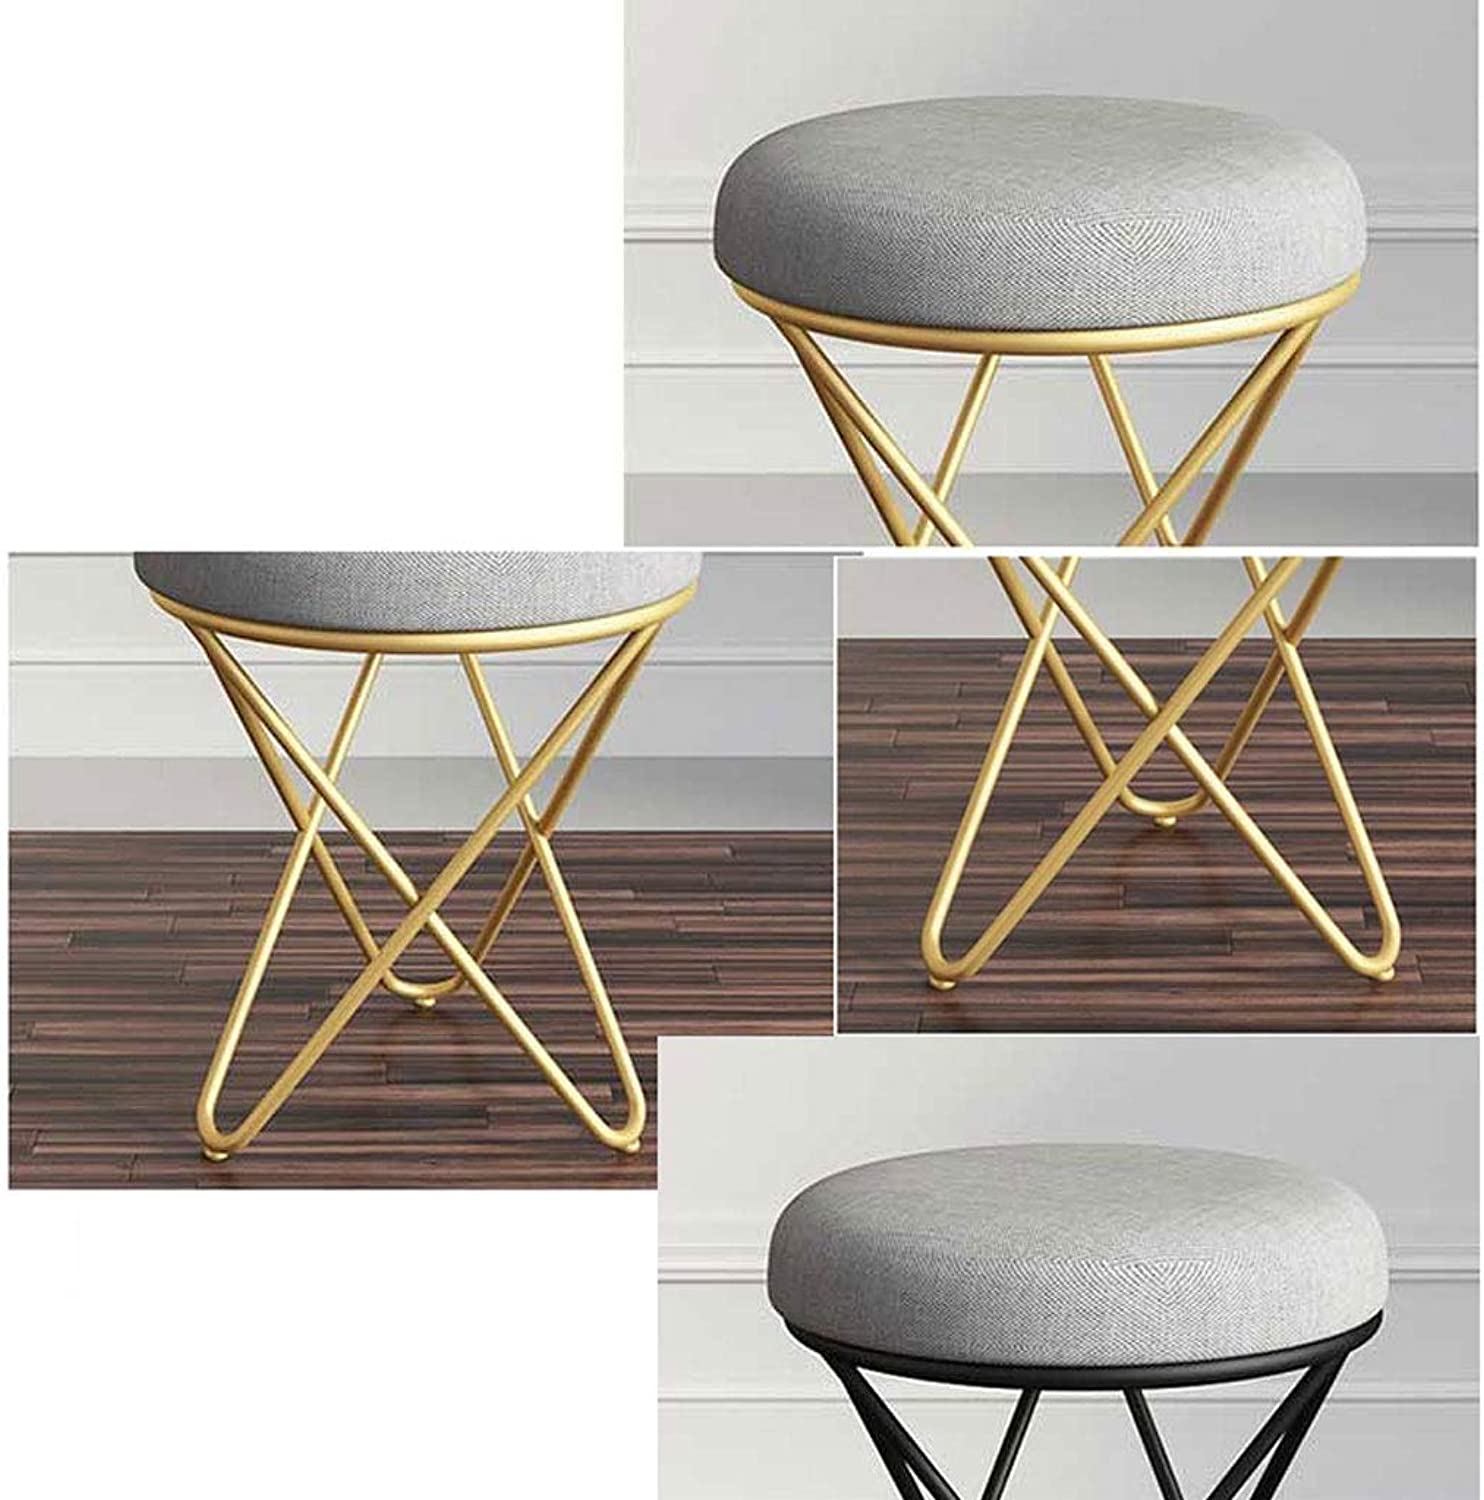 Small Stool Makeup Stool Bedroom Stool Chair Small Feet Change shoes Bench GMING (color   White)